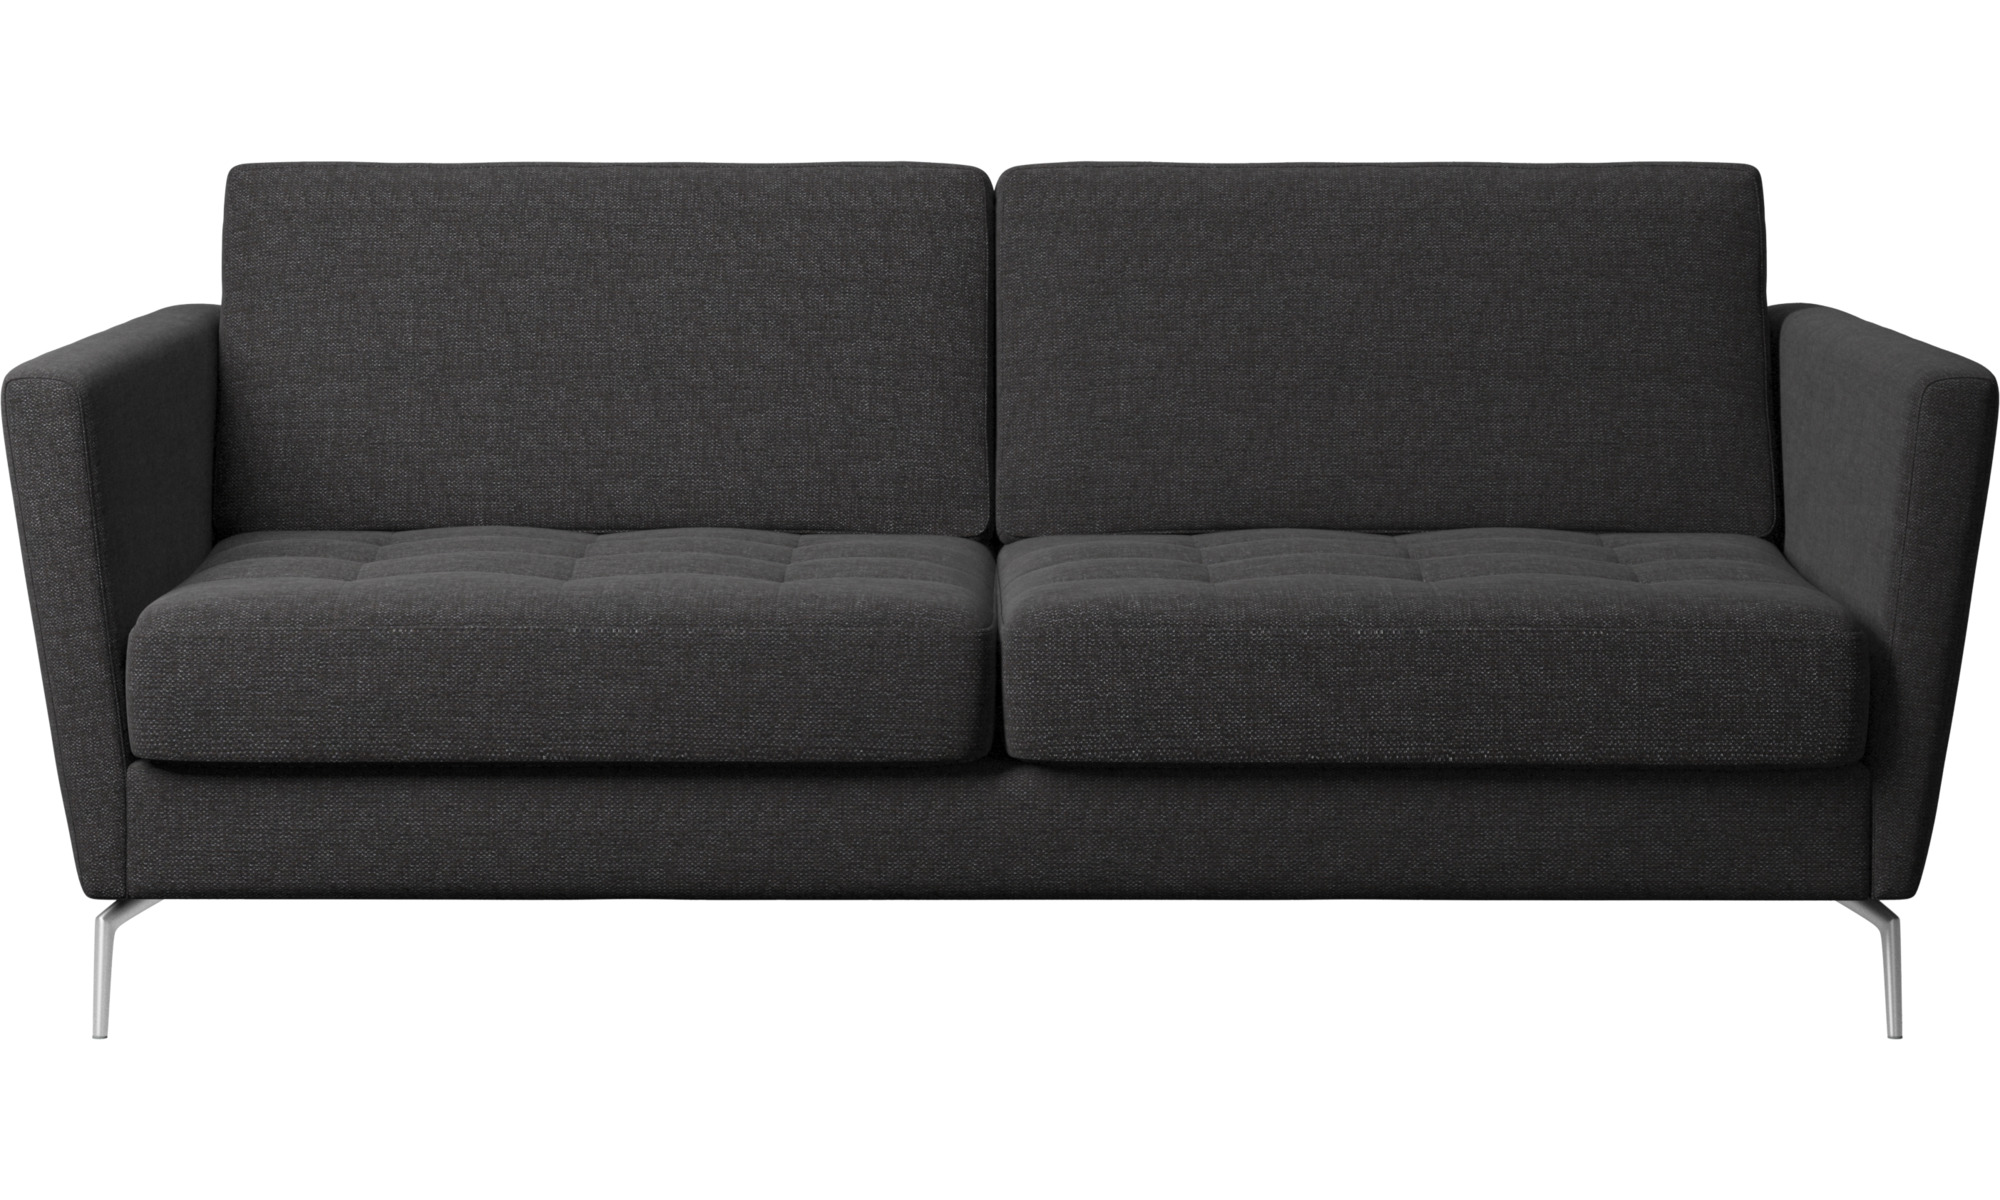 Sofa Beds Osaka Sofa Bed Tufted Seat Boconcept